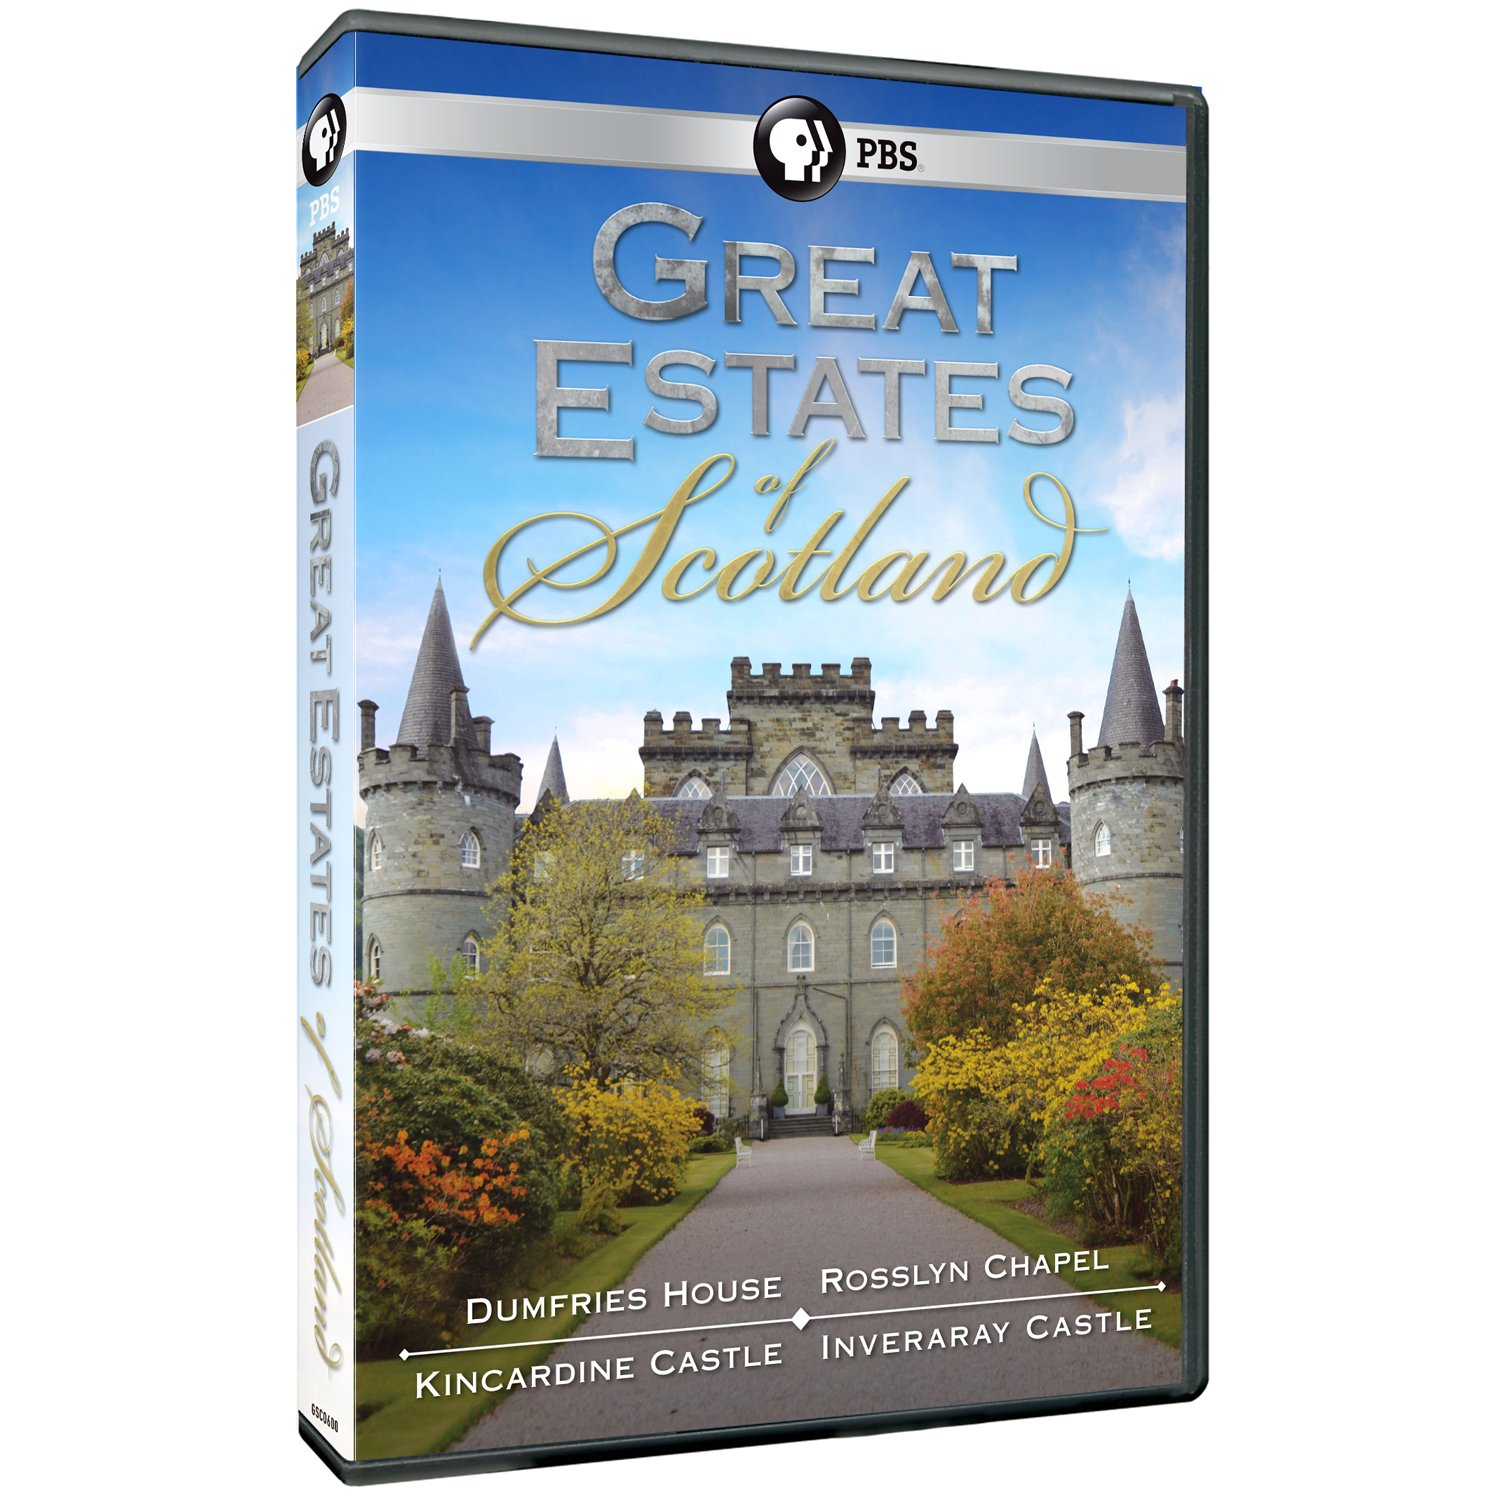 Ravishing Great Estates Of Scotland Dvd  Region  Us Import Ntsc Amazon  With Great Great Estates Of Scotland Dvd  Region  Us Import Ntsc Amazoncouk  Dvd  Bluray With Charming Saville Gardens Also The Magic Garden Philadelphia In Addition How To Get Rid Of Red Ants In The Garden And Ilm Walled Garden As Well As Wood Garden Chairs Additionally Topman Covent Garden From Amazoncouk With   Great Great Estates Of Scotland Dvd  Region  Us Import Ntsc Amazon  With Charming Great Estates Of Scotland Dvd  Region  Us Import Ntsc Amazoncouk  Dvd  Bluray And Ravishing Saville Gardens Also The Magic Garden Philadelphia In Addition How To Get Rid Of Red Ants In The Garden From Amazoncouk